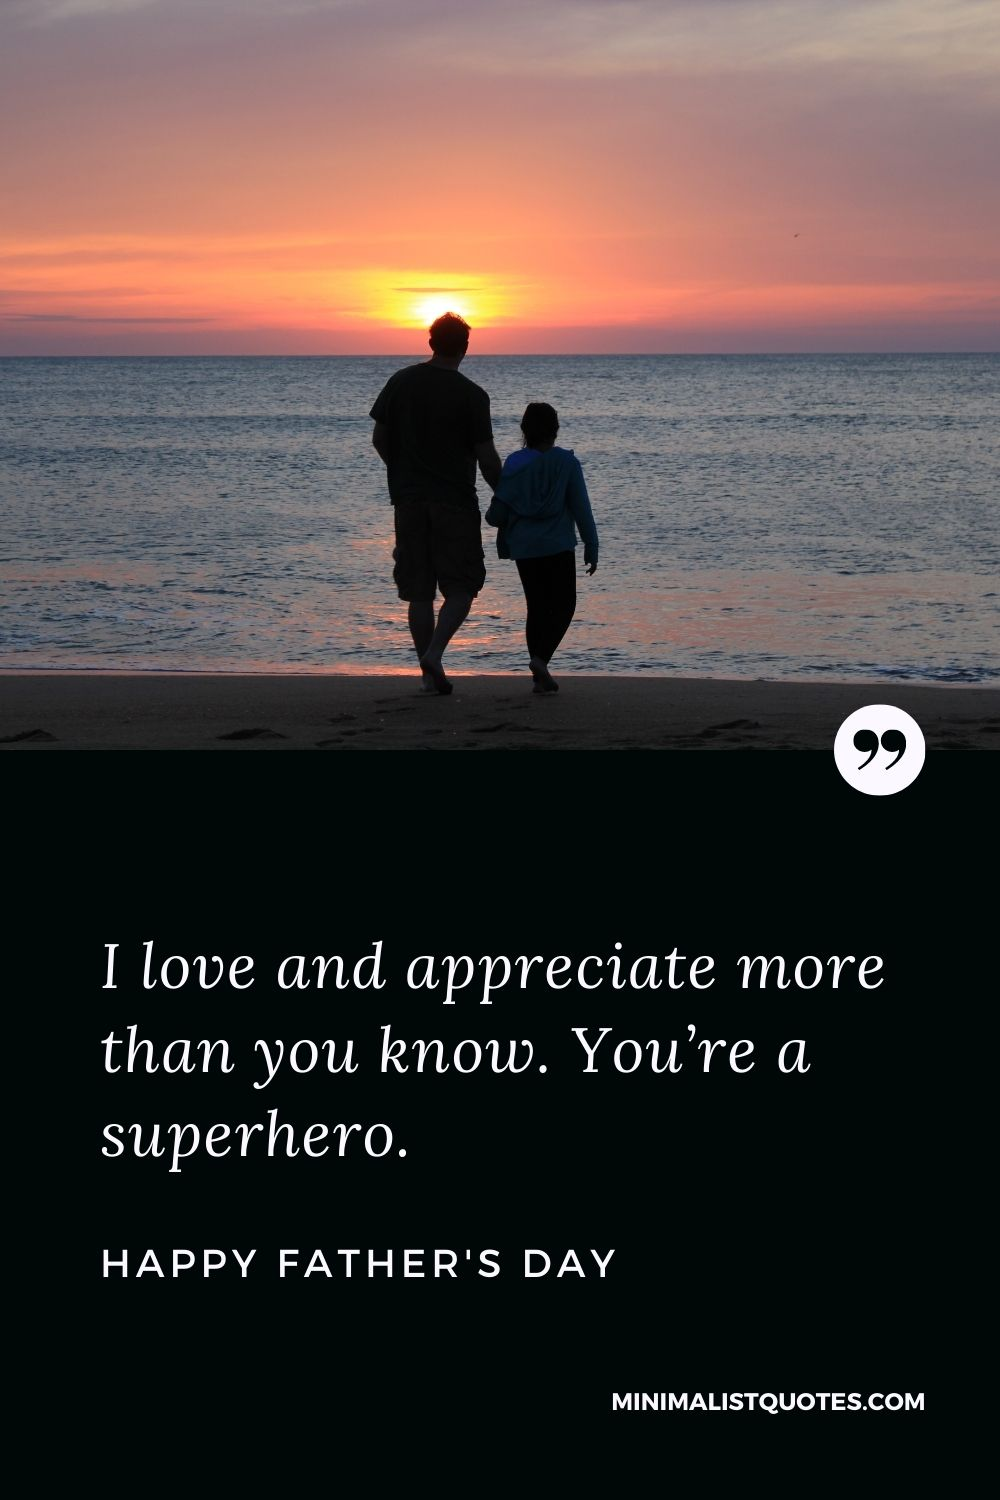 Father's Day wish, quote & message with image: I love and appreciate more than you know. You're a superhero. Happy Father's Day!